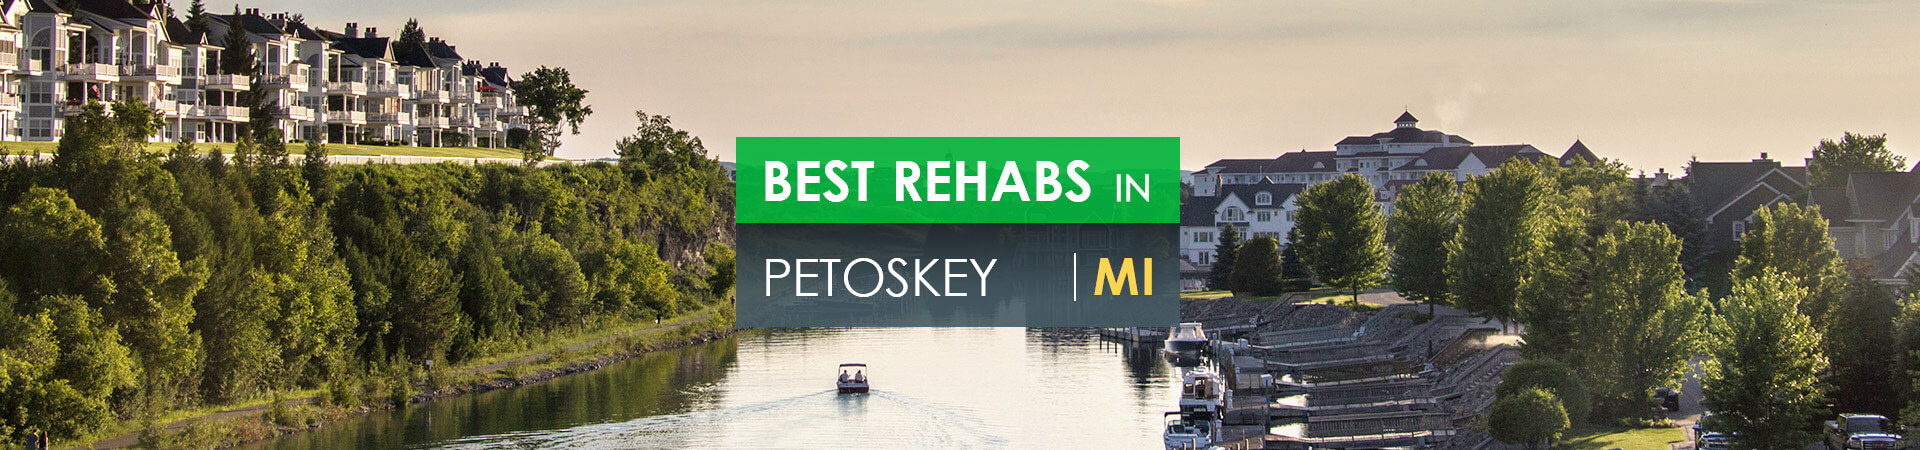 Best rehabs in Petoskey, MI